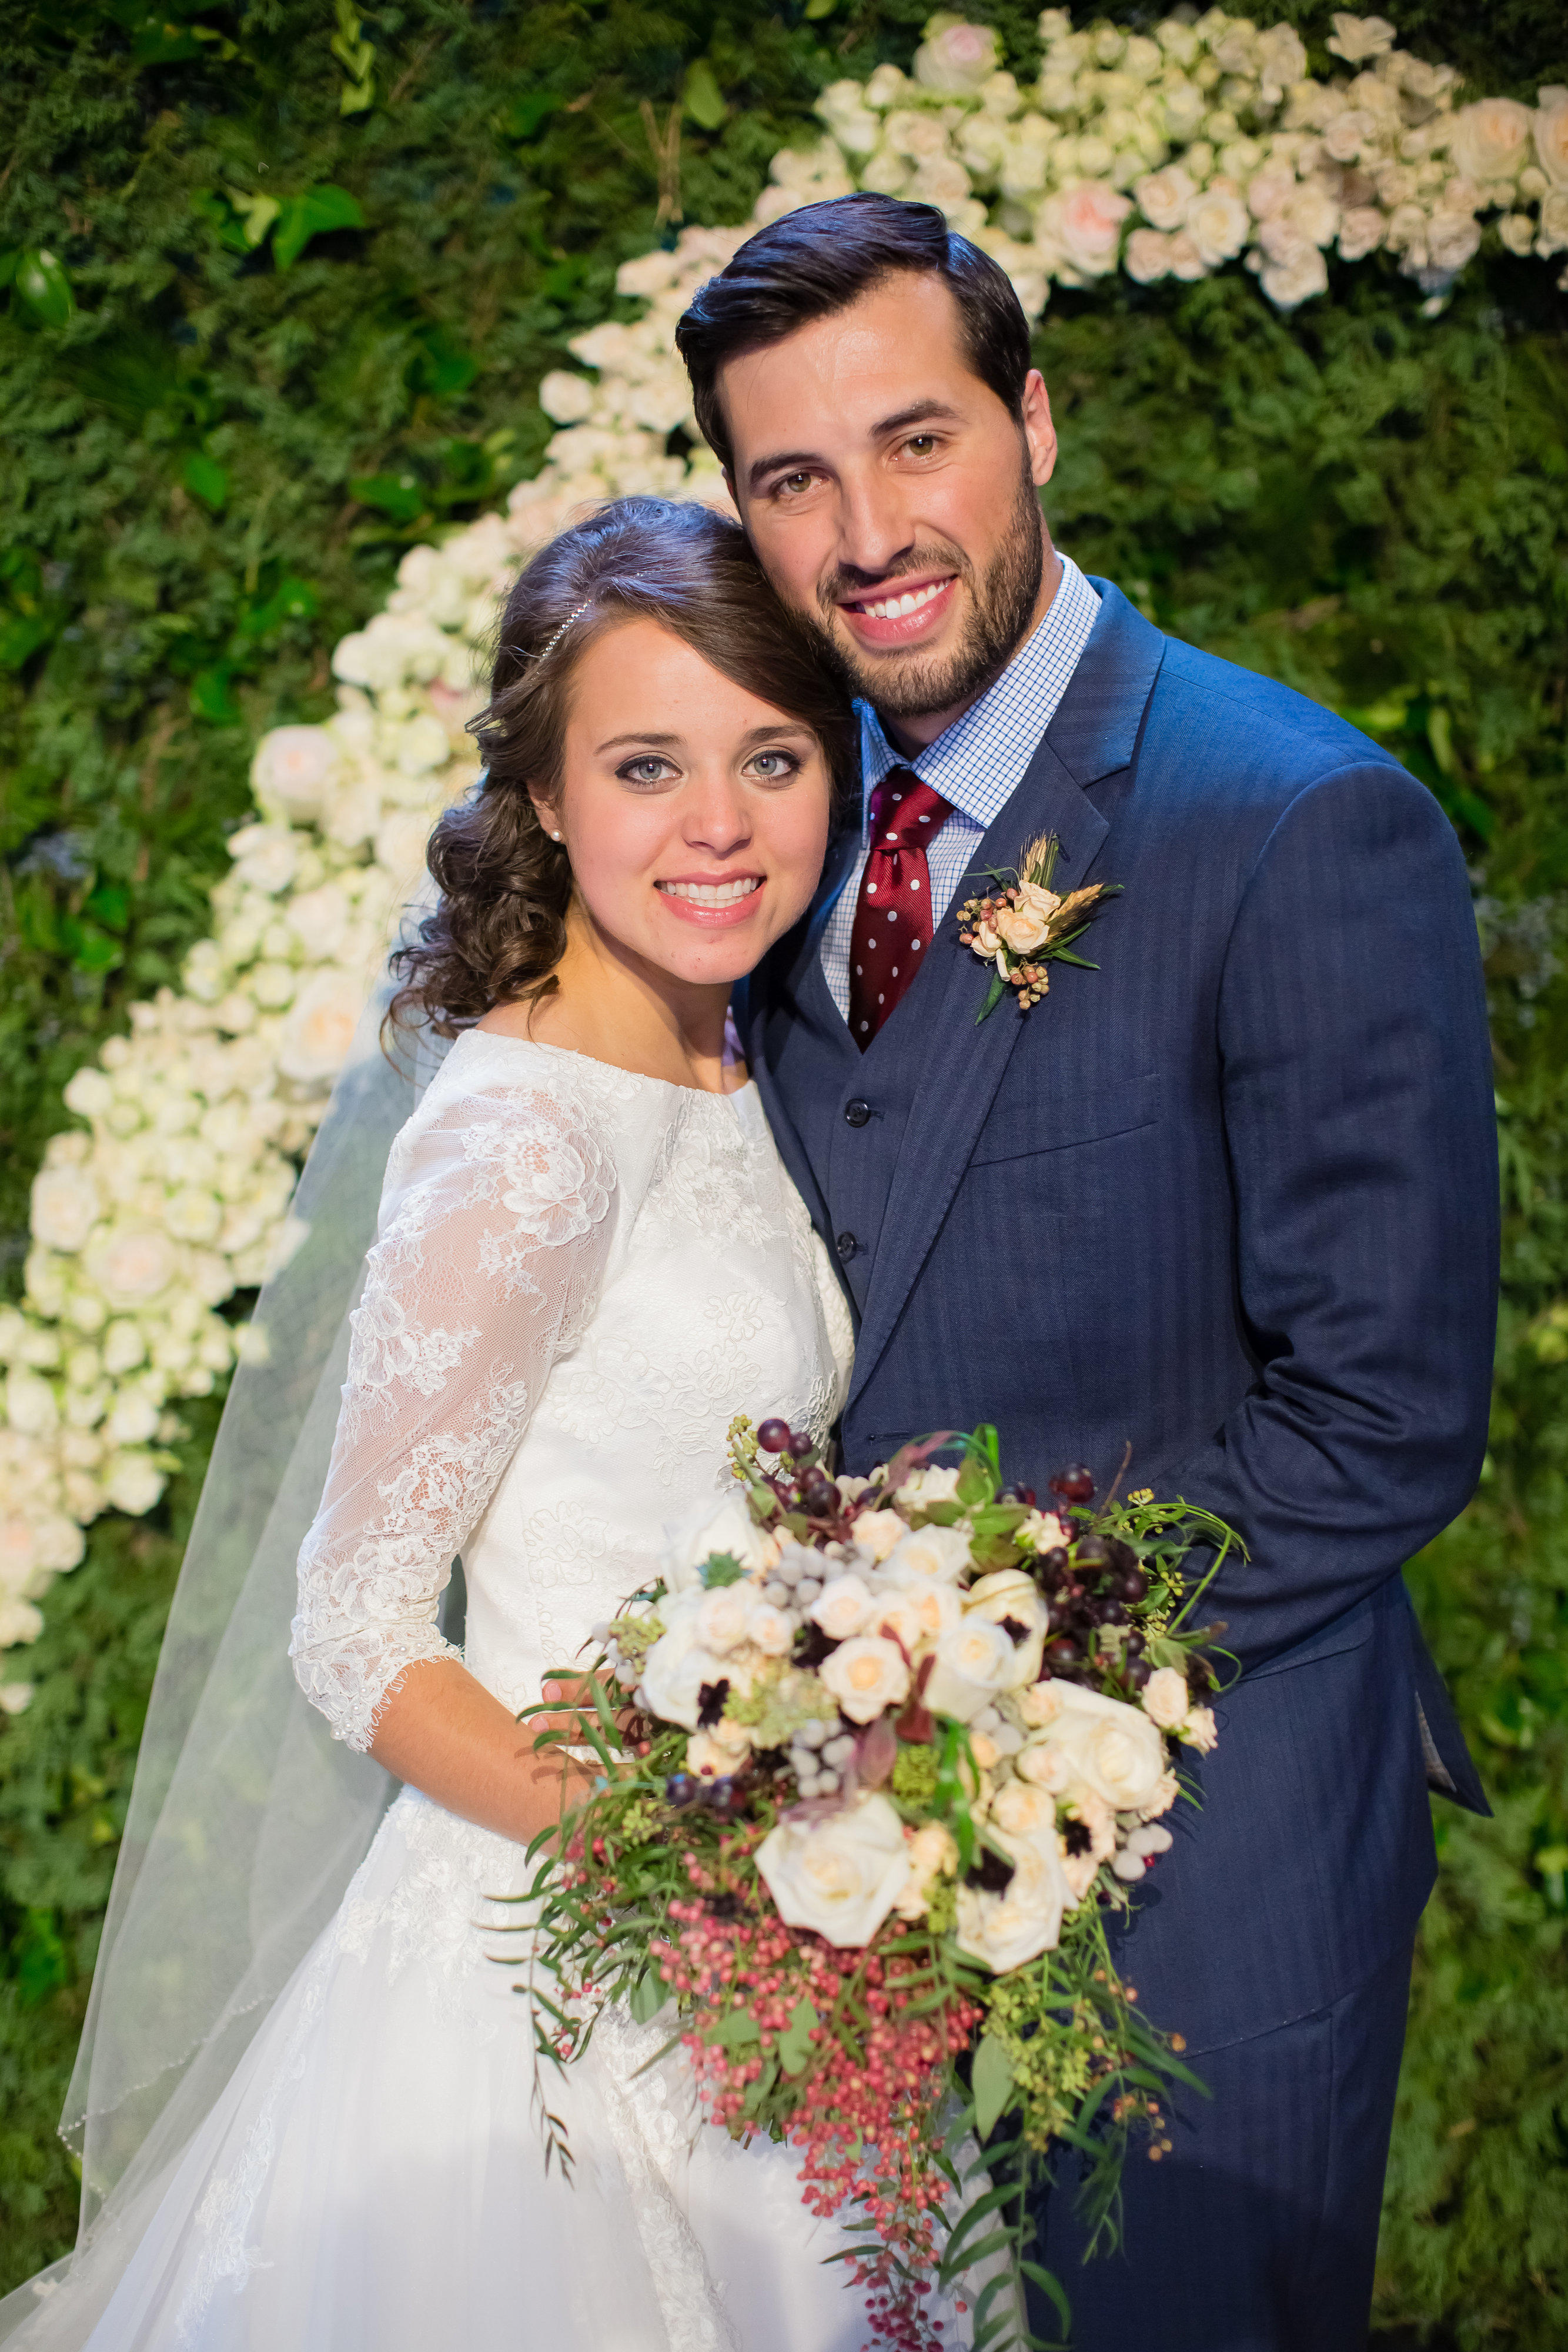 Jinger and jeremys wedding photos counting on tlc jinger duggar on her wedding day junglespirit Images